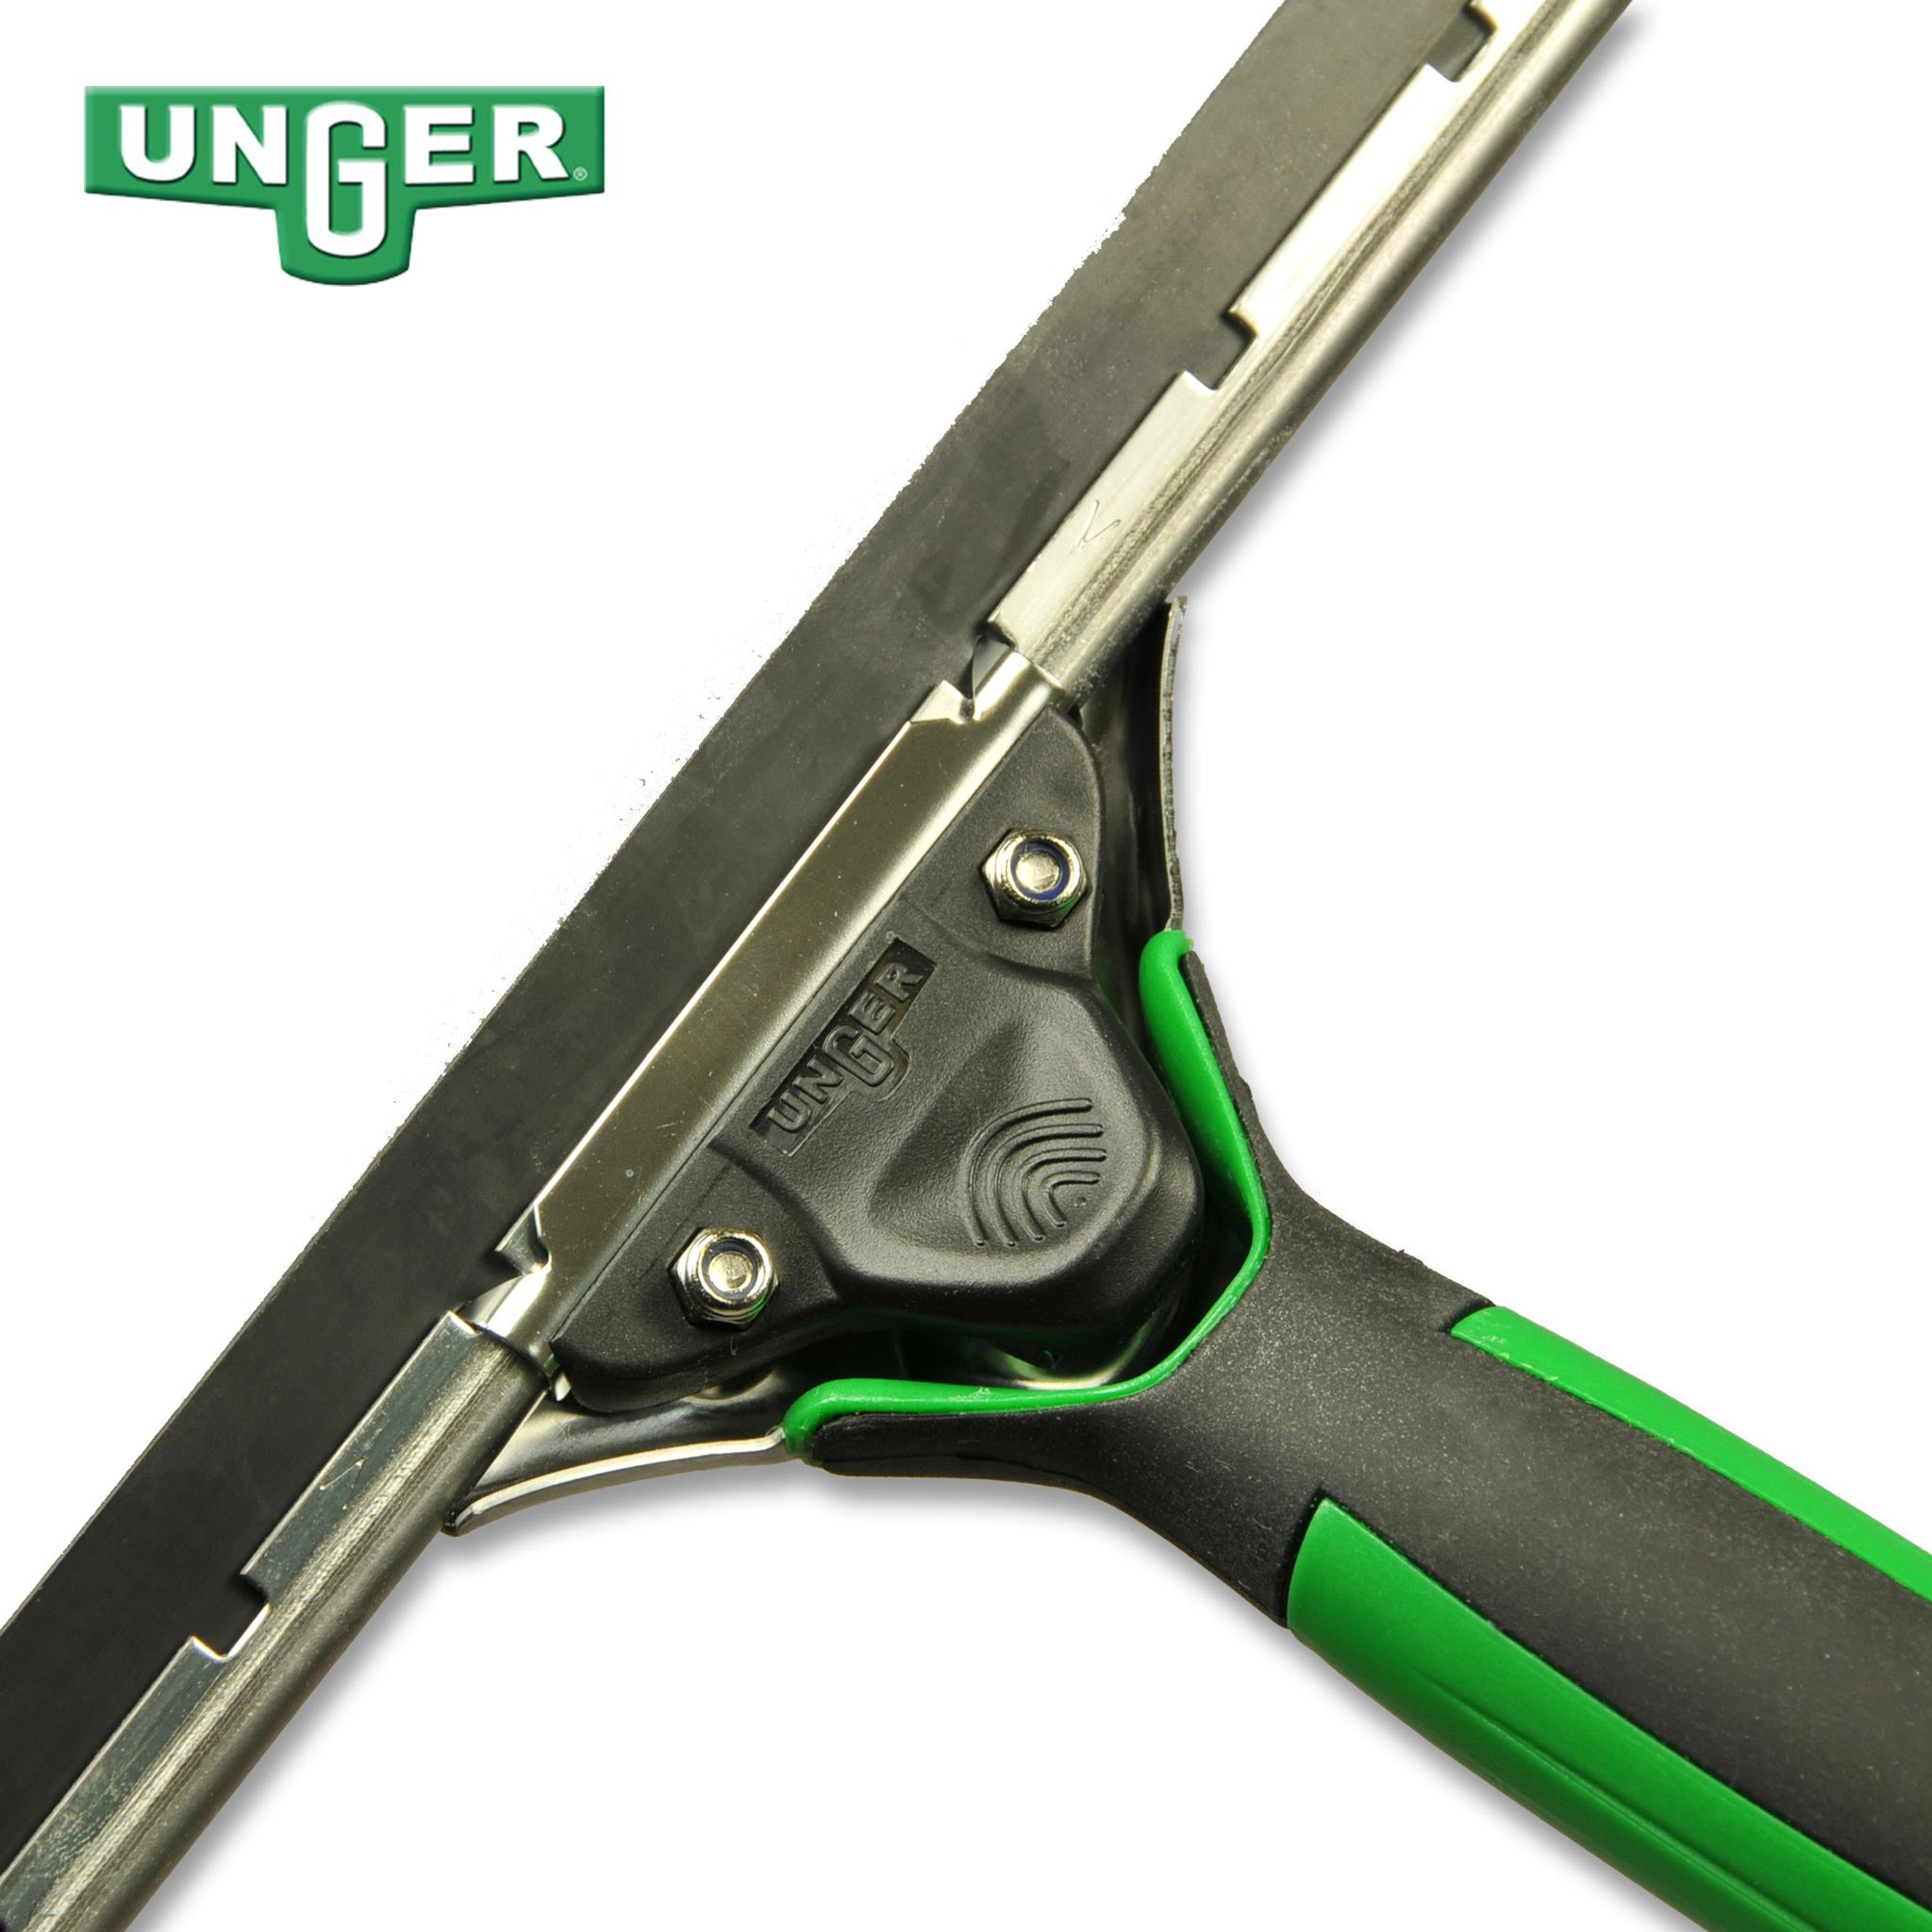 Unger ErgoTec XL Window Squeegee